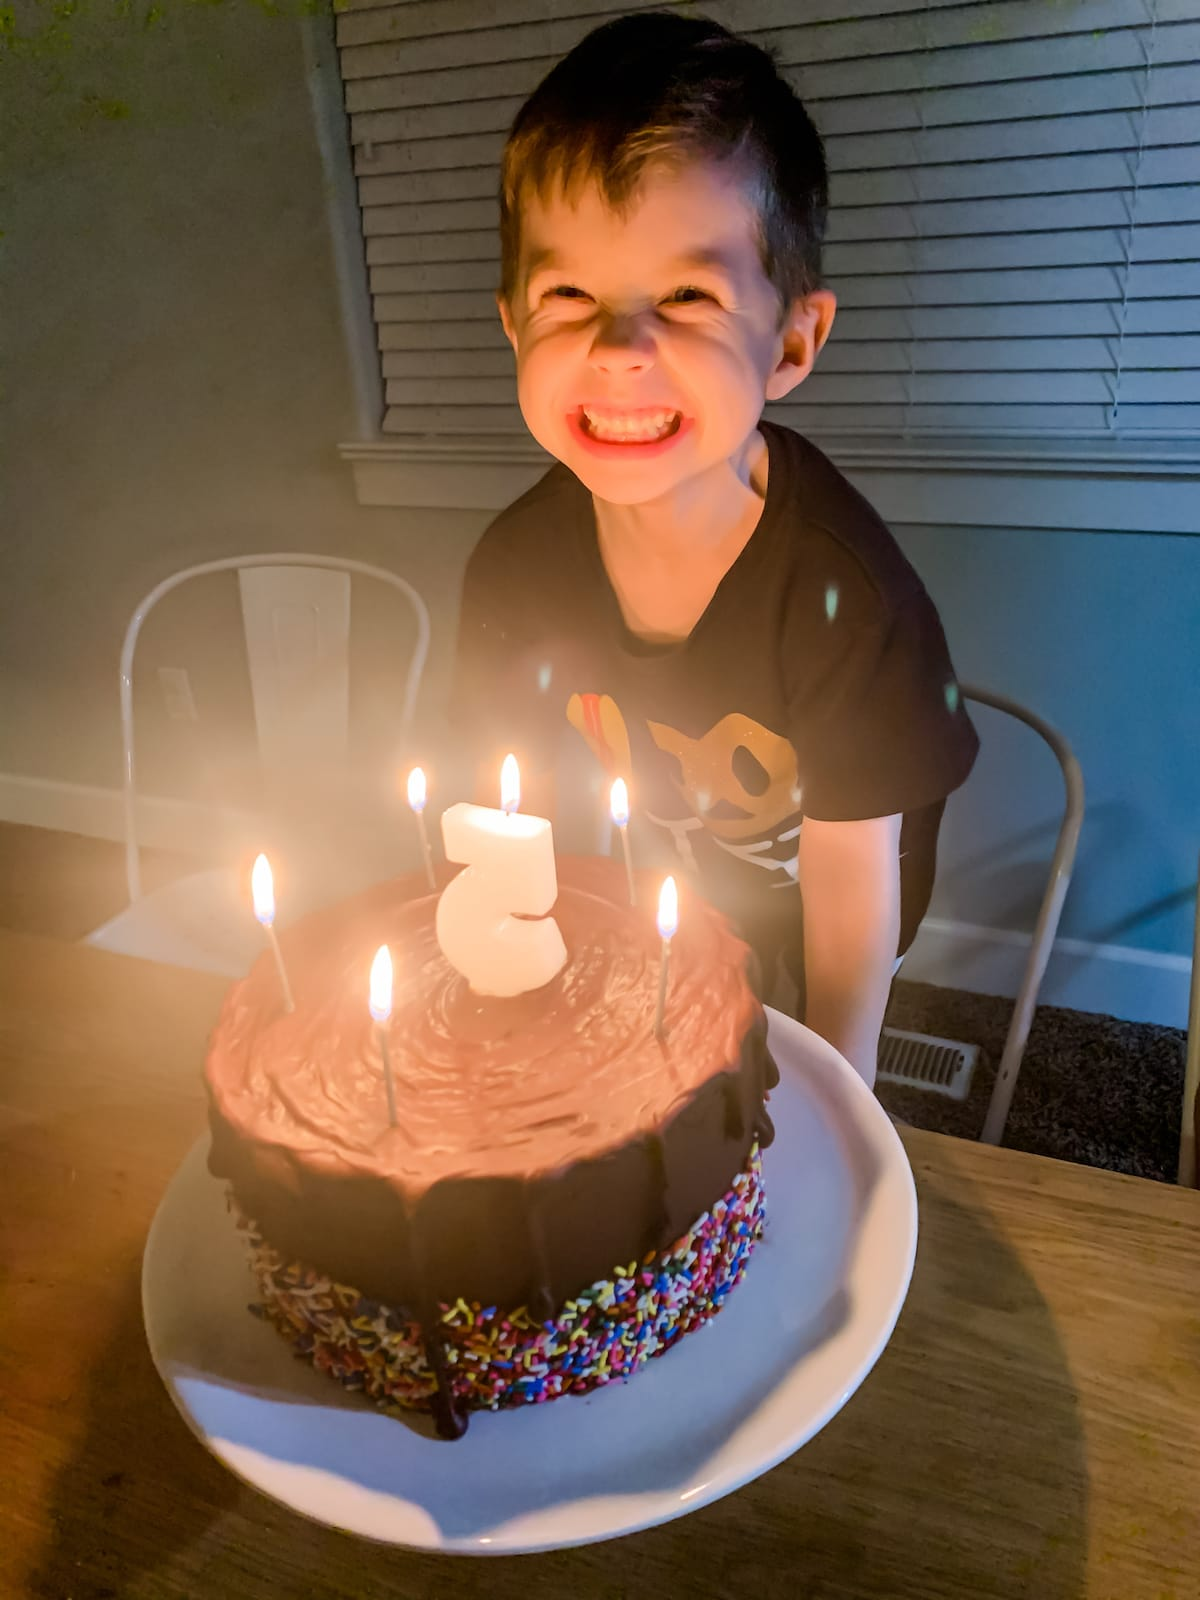 boy smiling with birthday cake